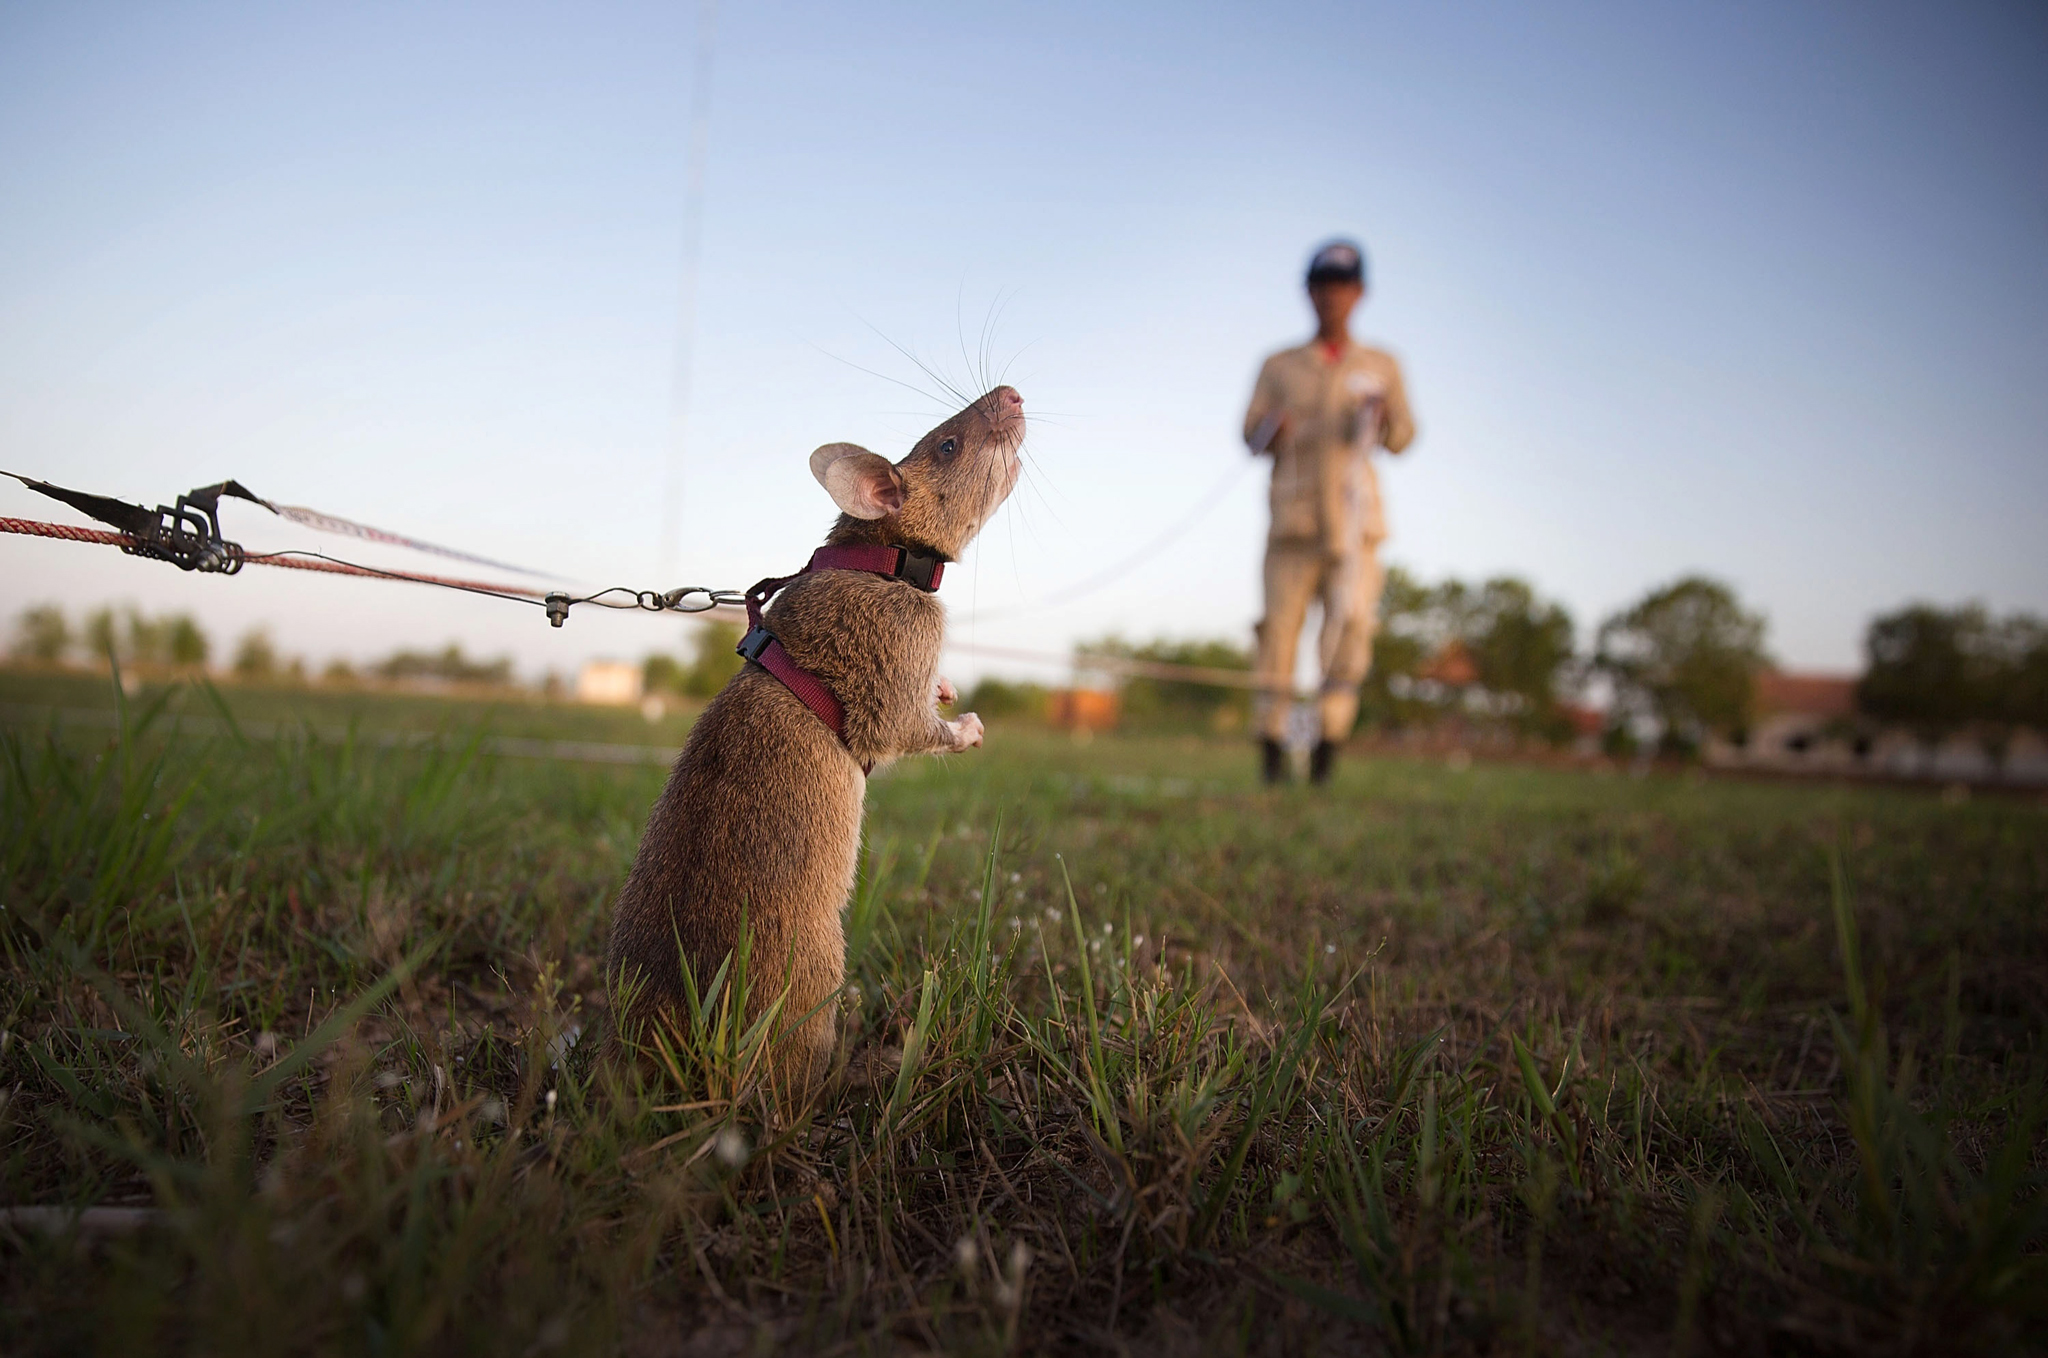 Cambodia's Demining Authority Train Giant Rats To Detect Landmines...SIEM REAP, CAMBODIA - JULY 02:  A rat searches for land mines and unexploded ordnance during a training session on July 2, 2015 in Siem Reap, Cambodia. The Cambodian Mine Action Center (CMAC) working with the Belgian NGO APOPO has recently begun testing the feasability of using large mine detection rats from Tanzania to help clear fields of mines and unexploded ordnance in one of the most bombed and mined countries in the world.  (Photo by Taylor Weidman/Getty Images)